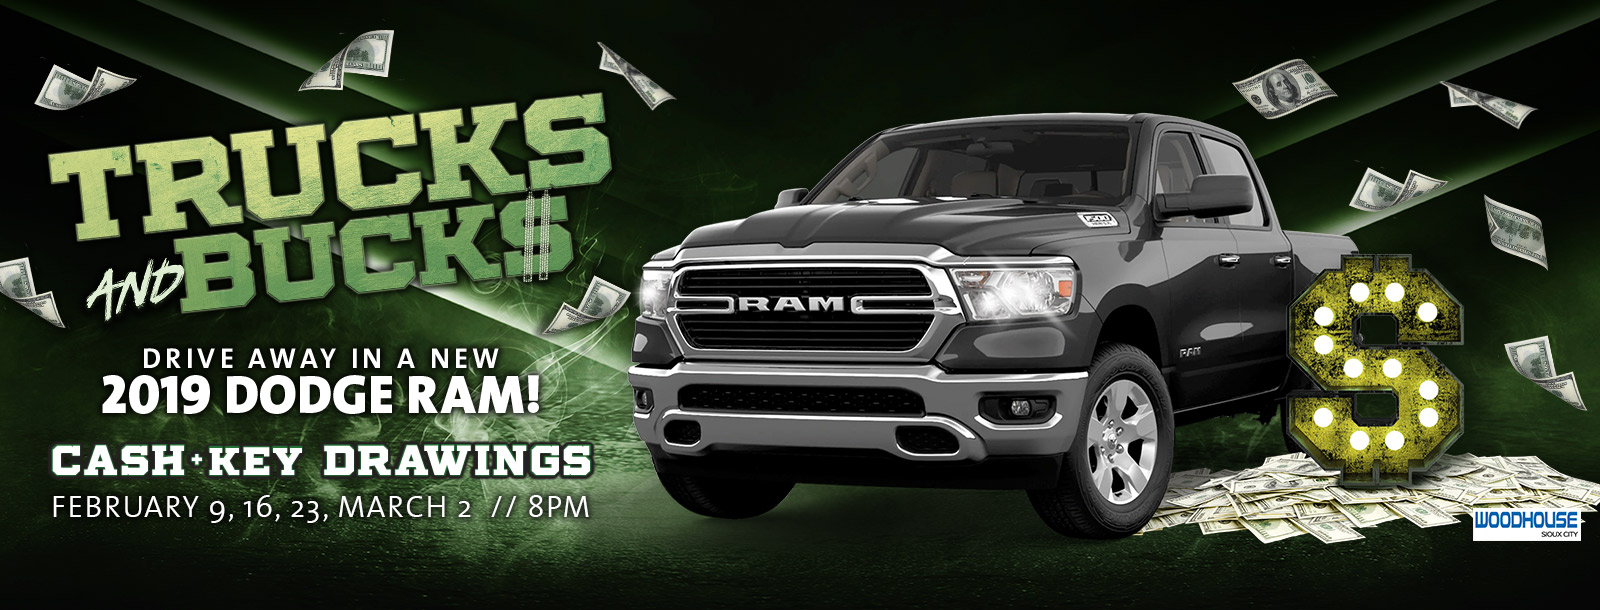 trucks and bucks sioux city casino promotion